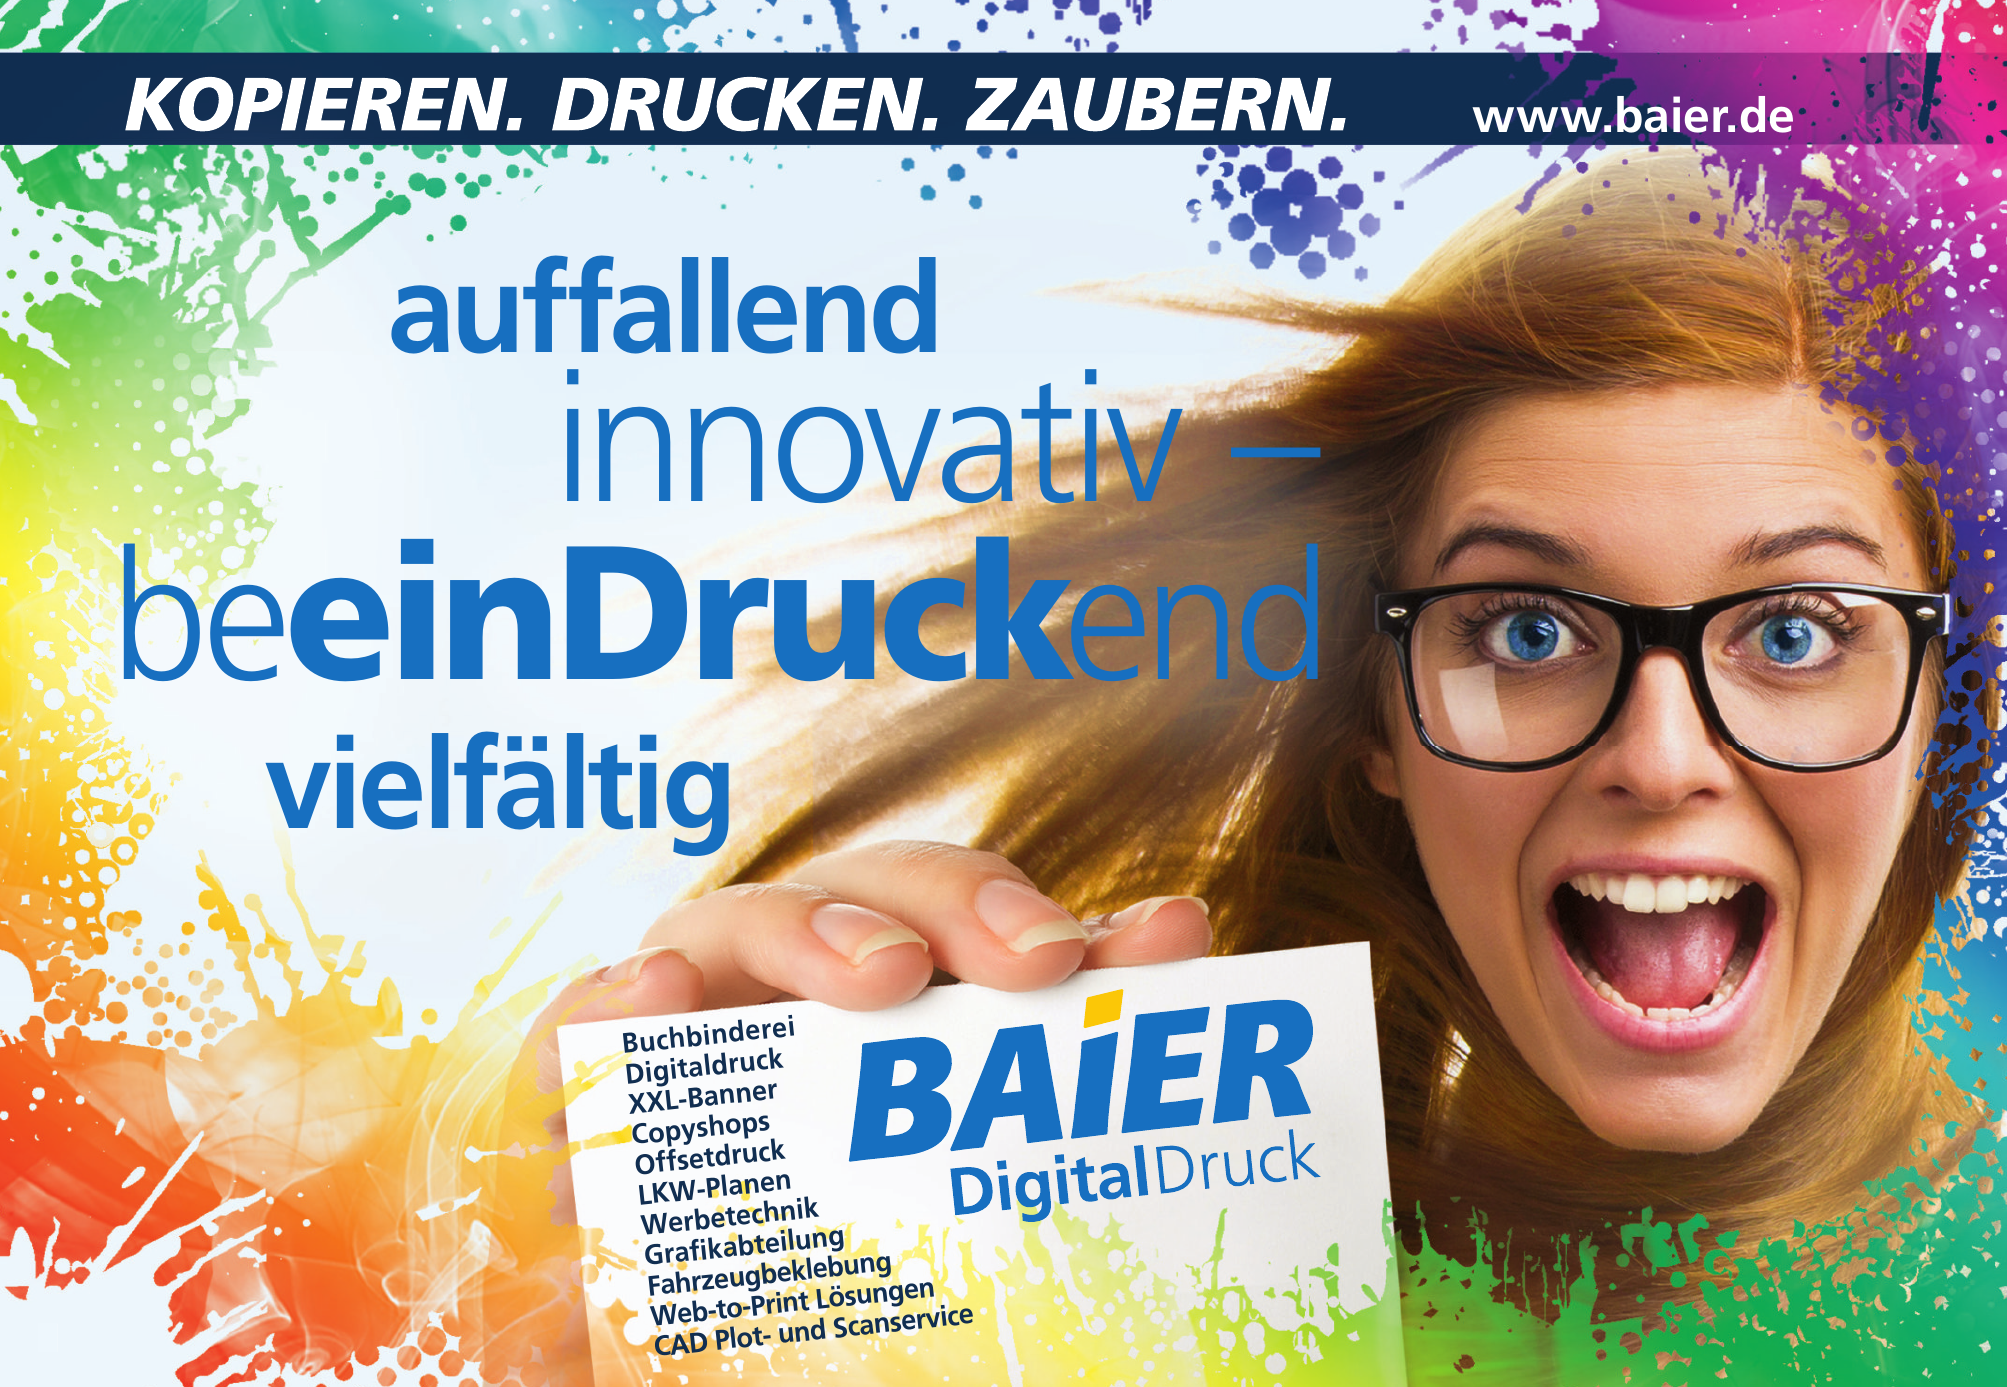 Baier Digital Druck